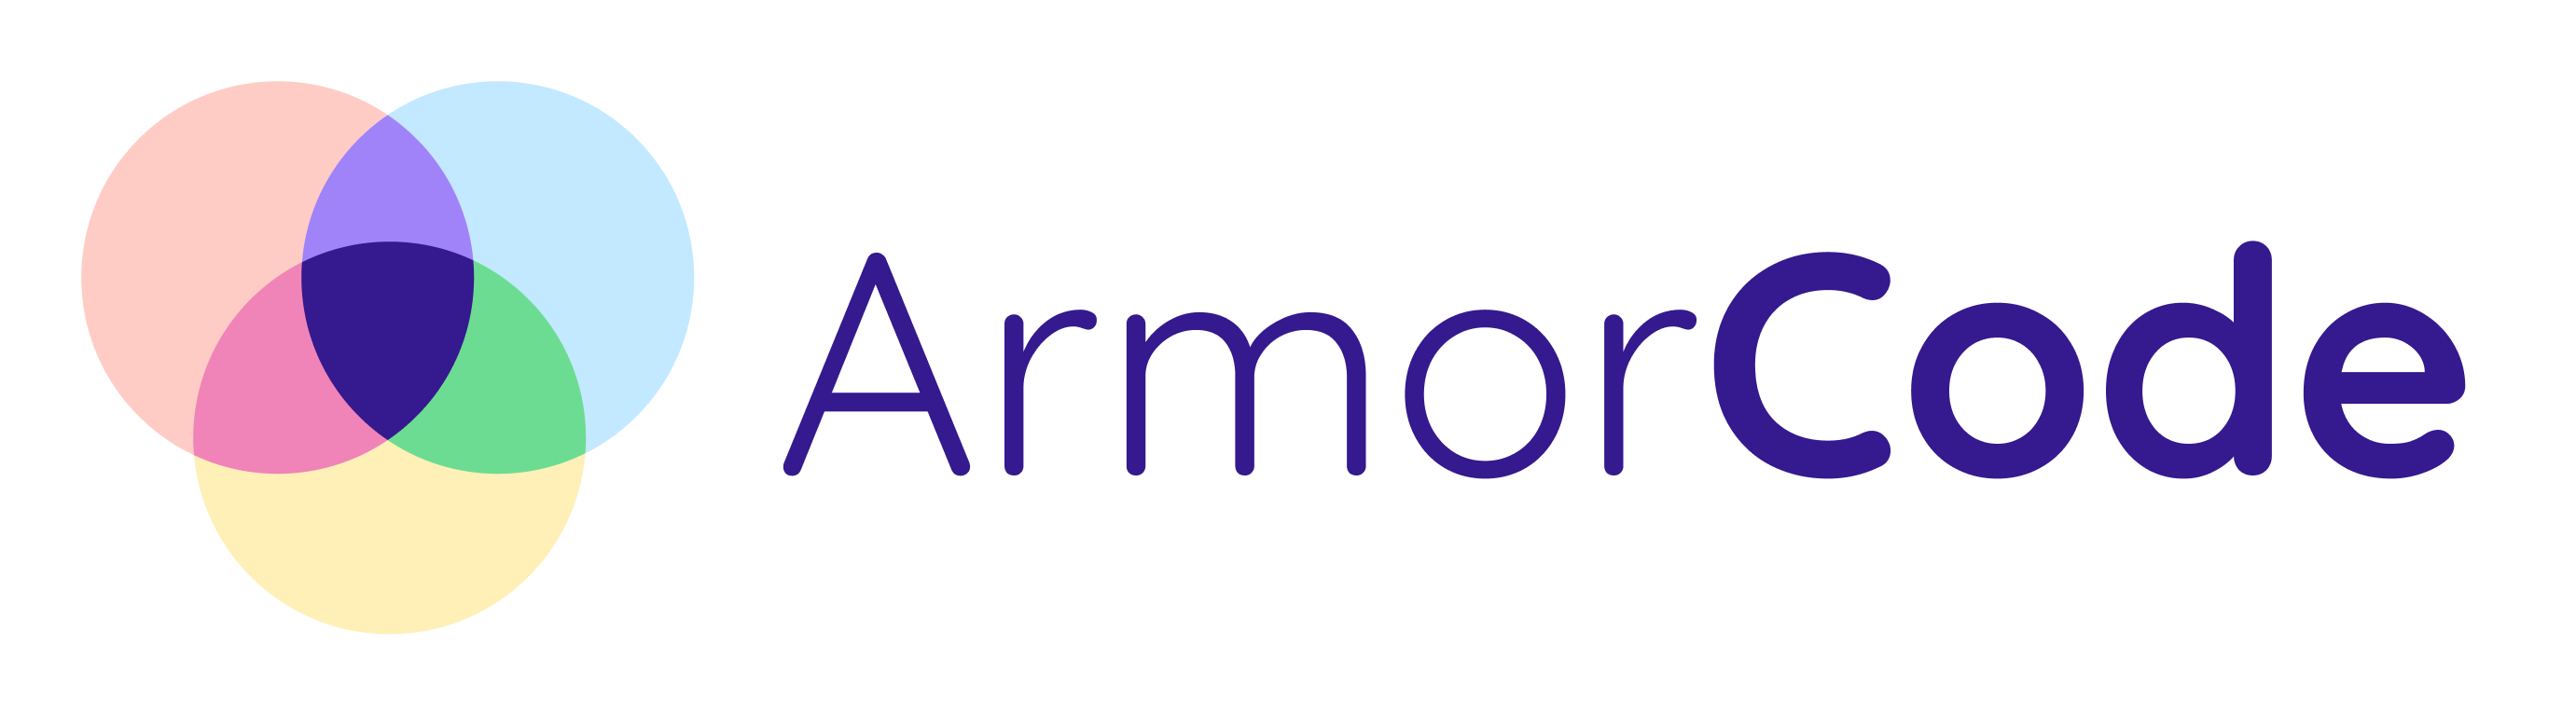 ArmorCode Achieves SOC 2 Type II Compliance; ArmorCode Wins Another Big Enterprise Customer